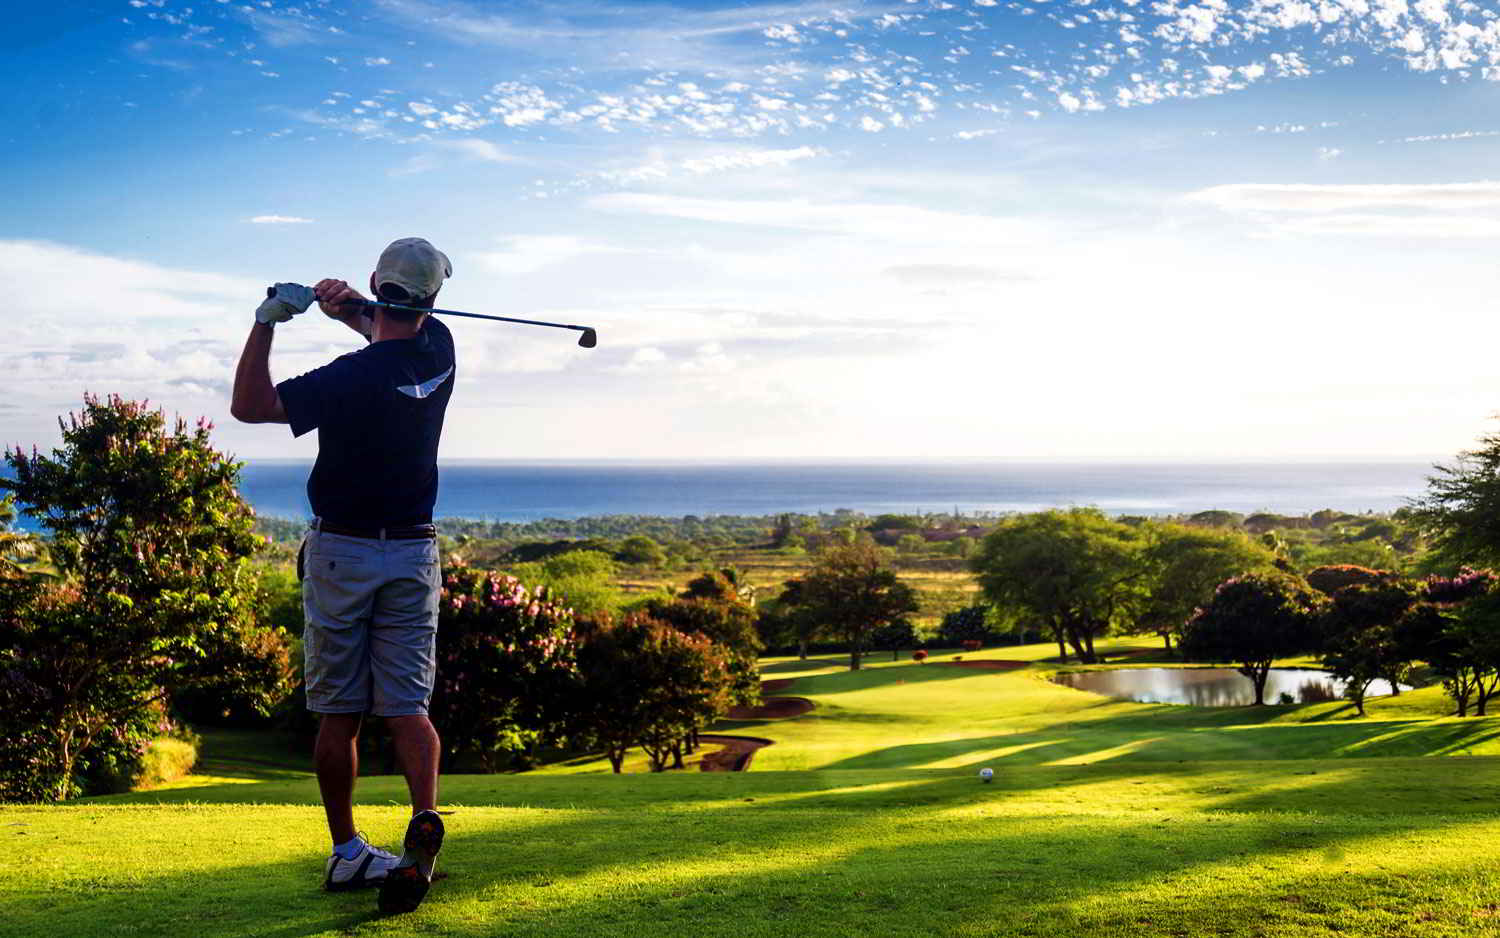 12 reasons to visit Marbella - Golf in Marbella